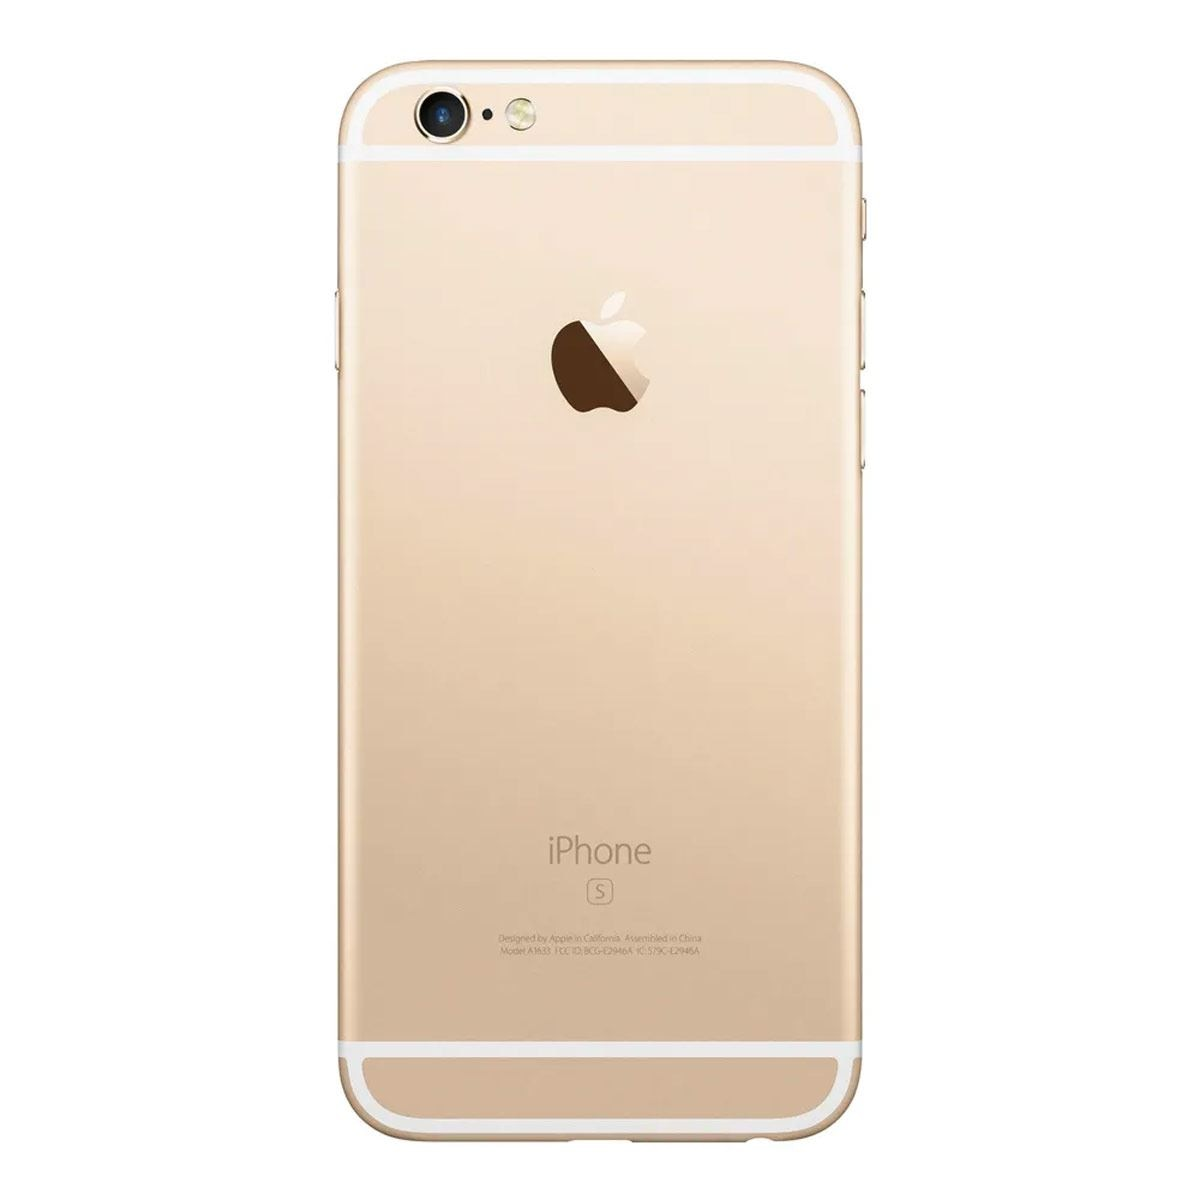 Amigo iPhone 6S 32 GB Color Oro (R9)